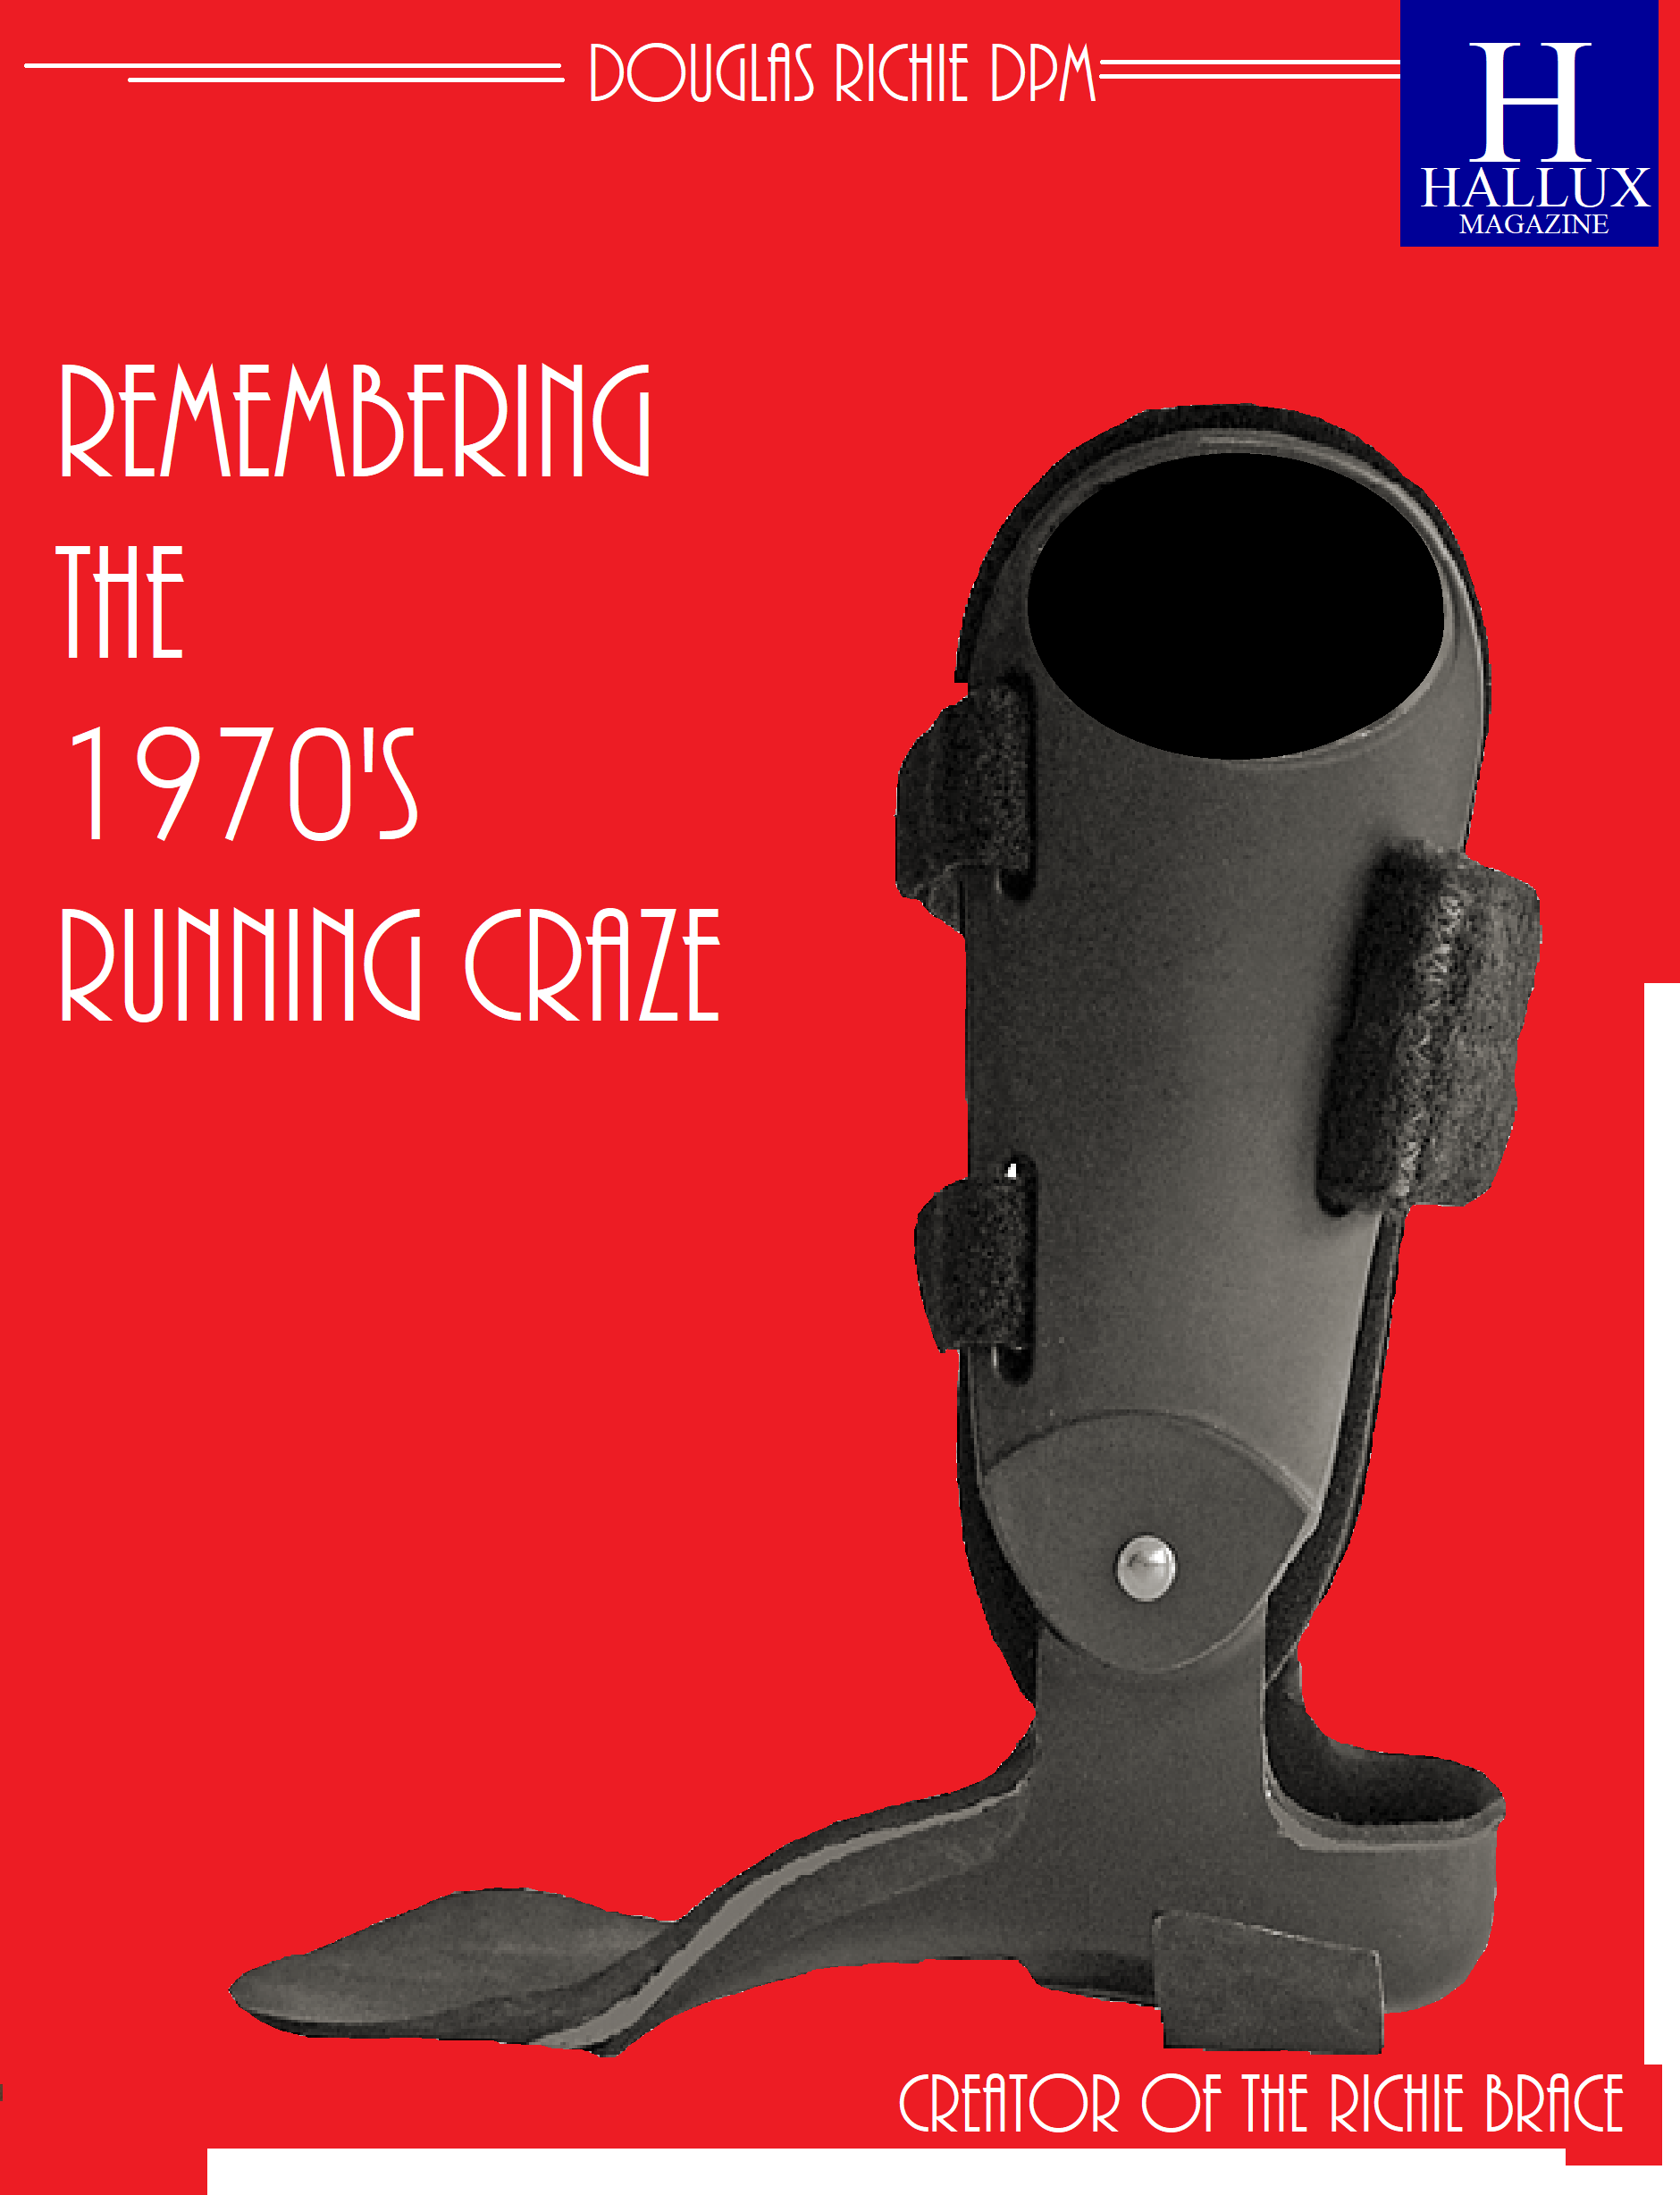 Remembering the 1970's Runing Craze